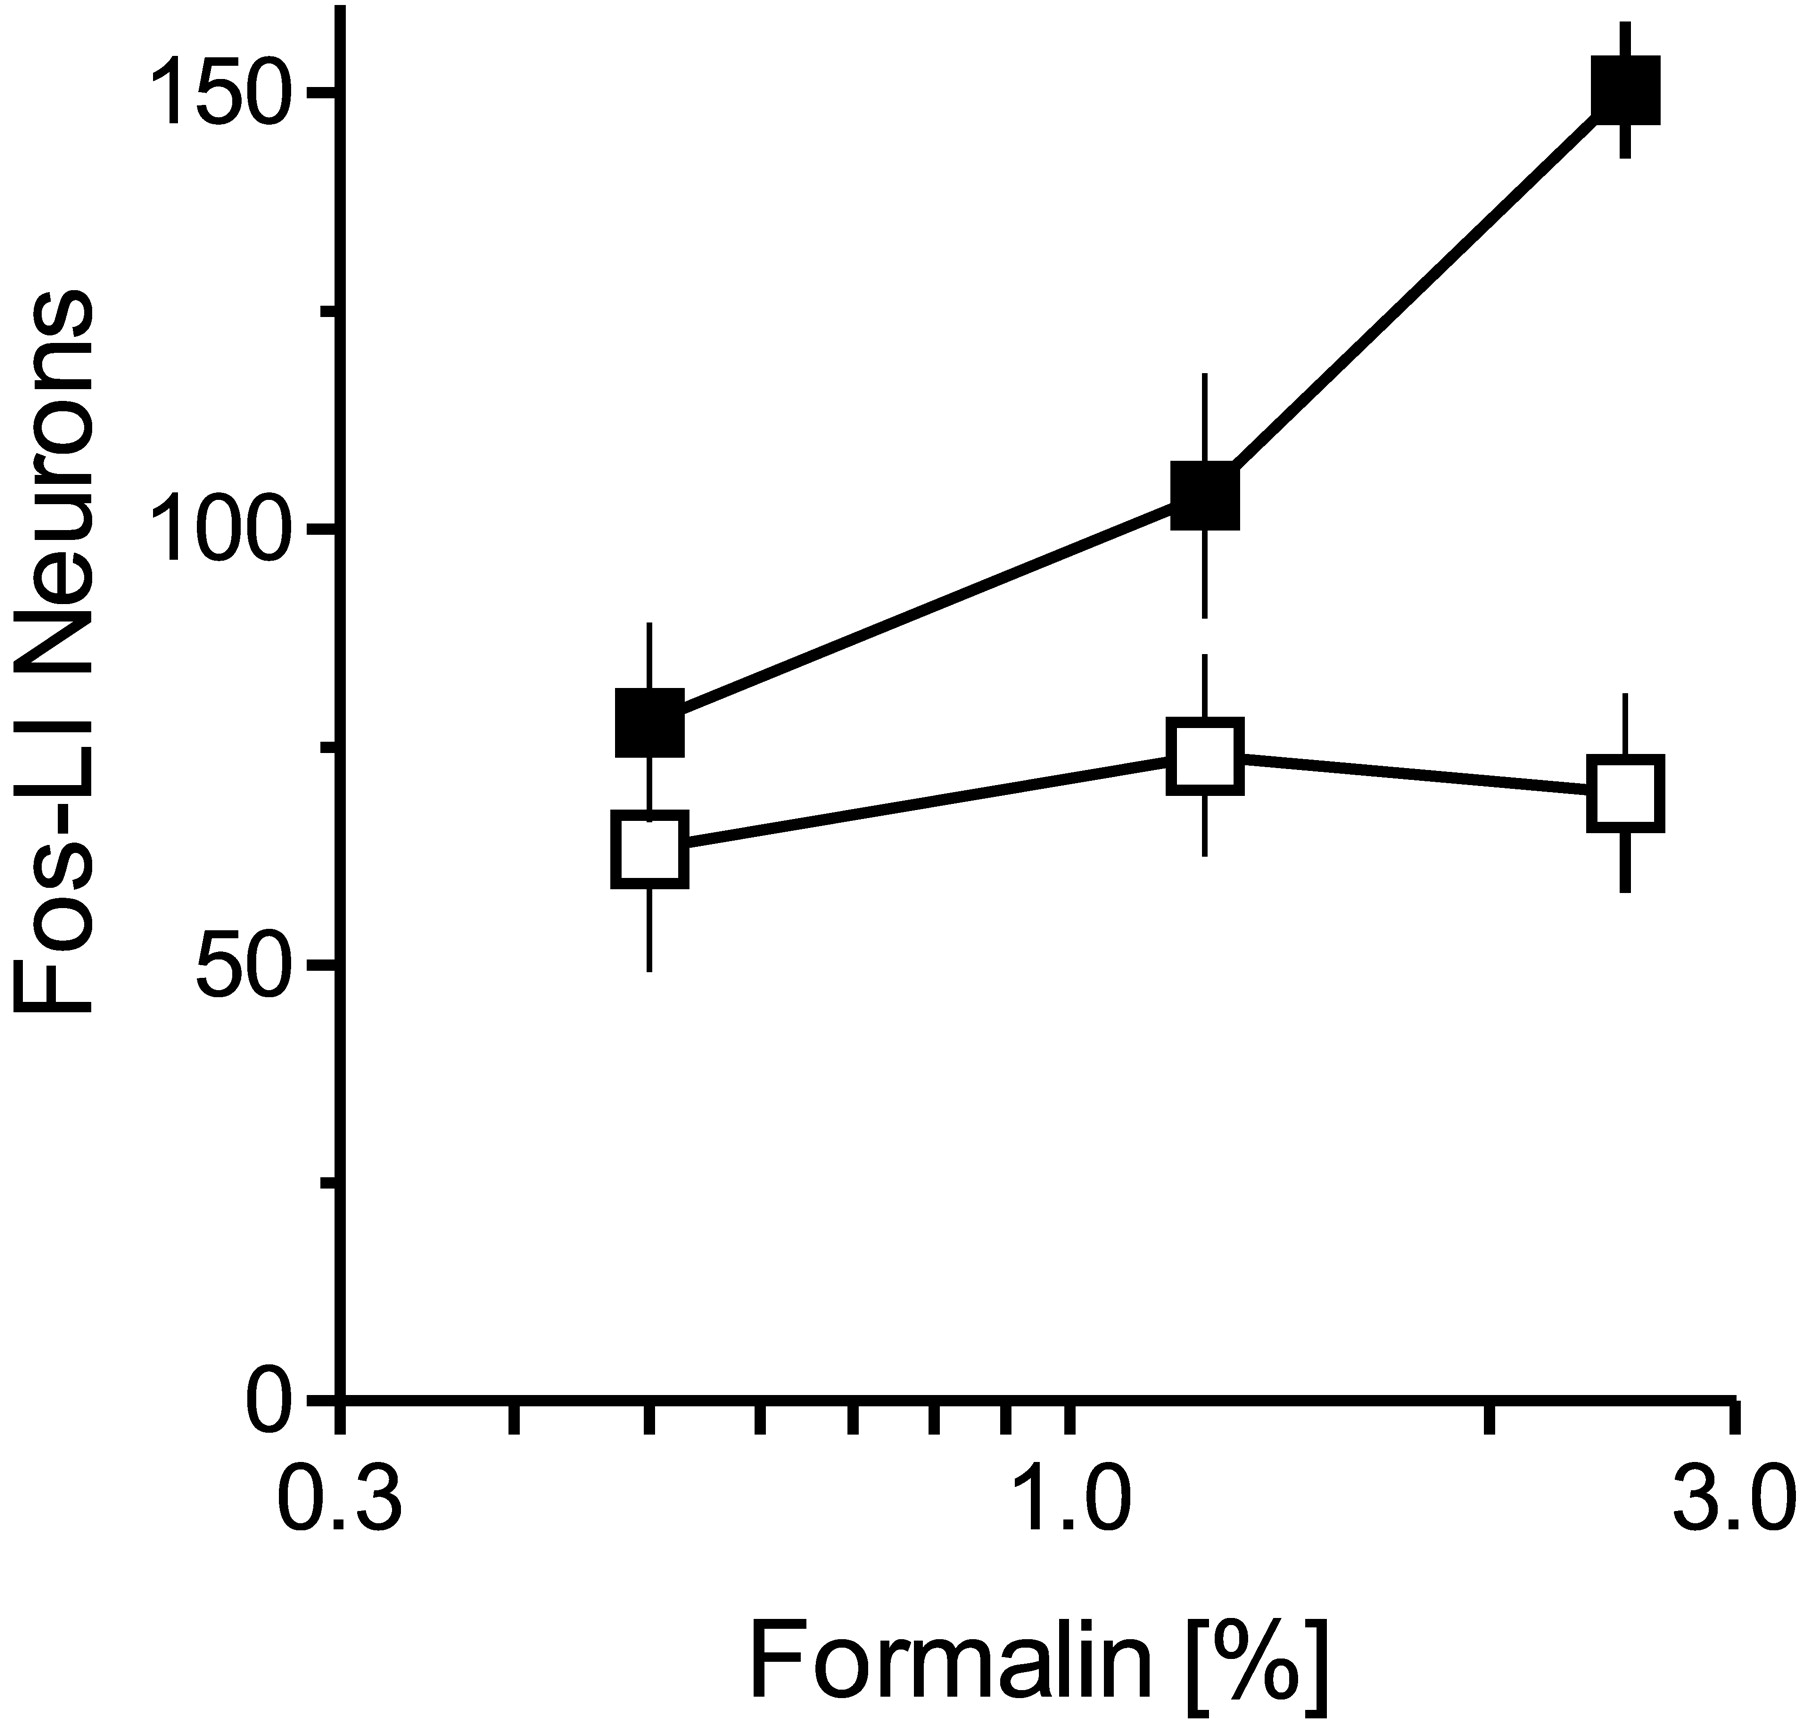 Intrathecally Administered Gabapentin Inhibits Formalin Evoked